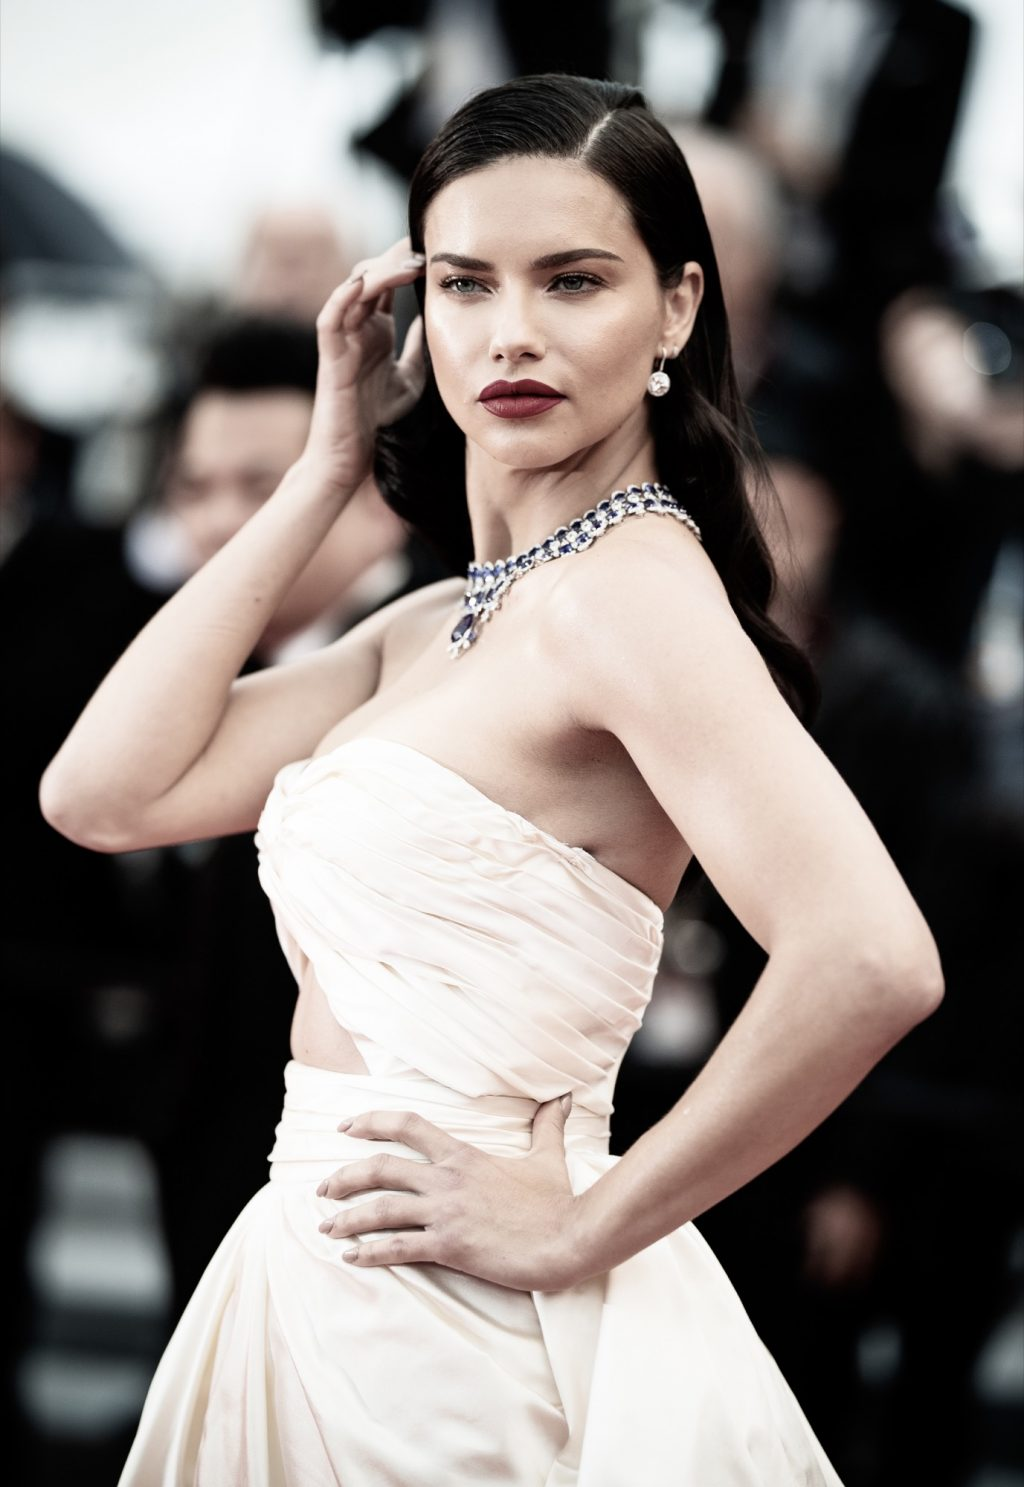 Adriana Lima's Best Beauty Looks – Vote for Your Favorite